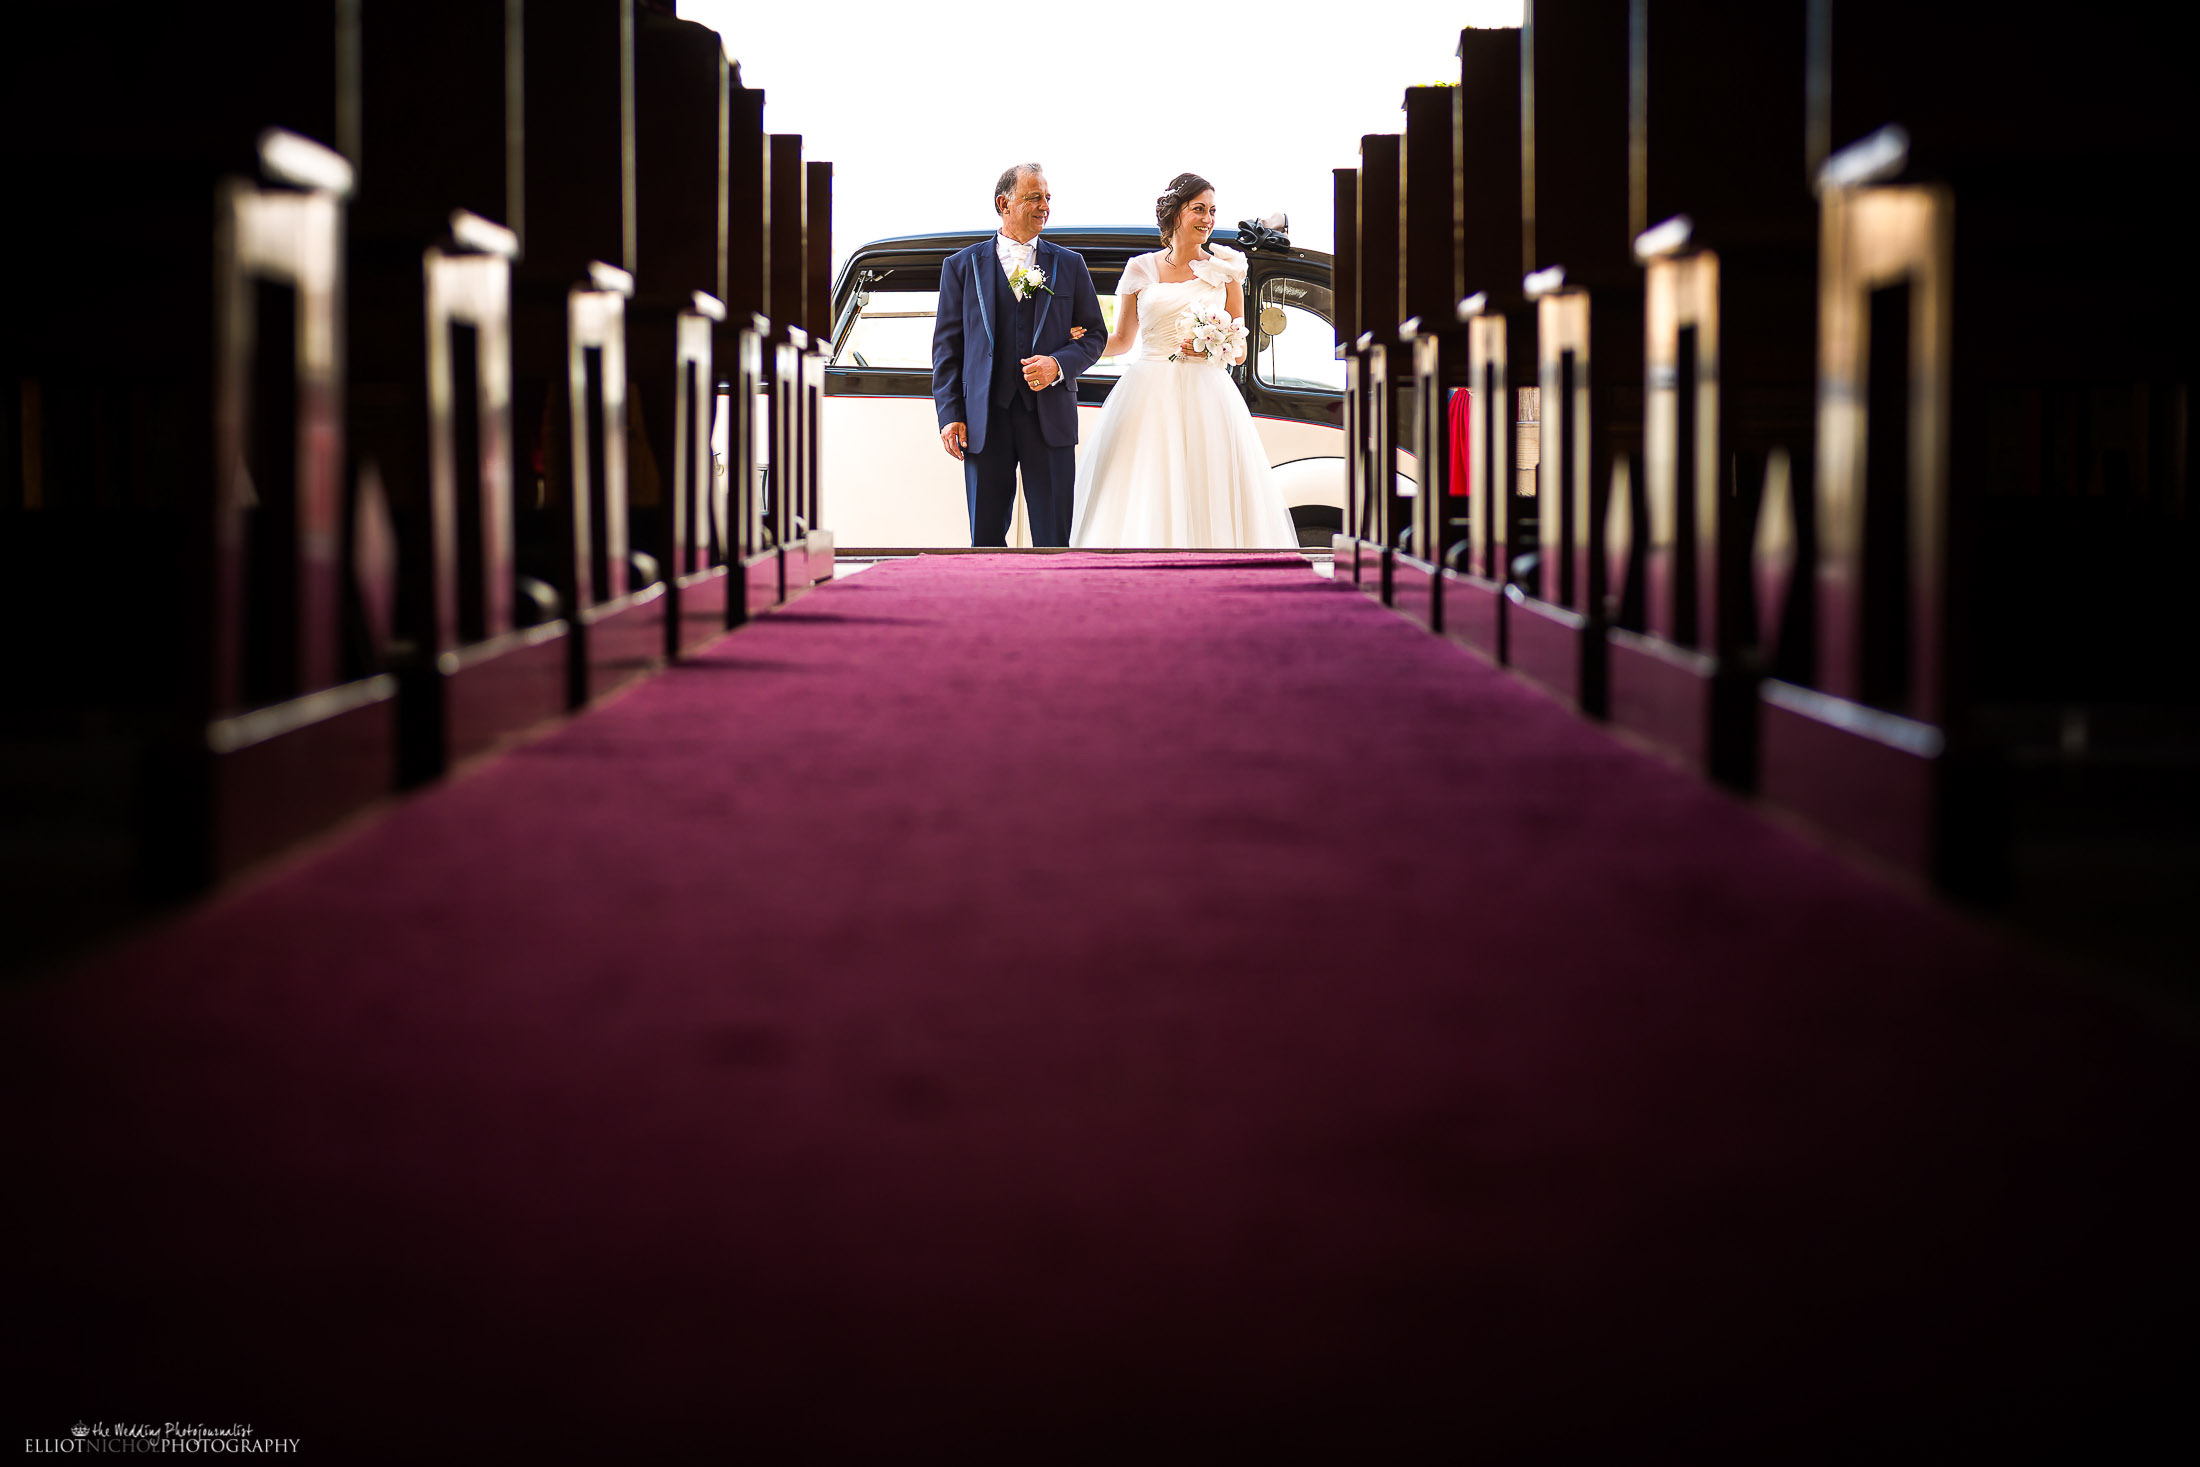 Bride with her father exit their vintage bridal car and wait outside the church before the ceremony. Photo by Elliot Nichol Photography.